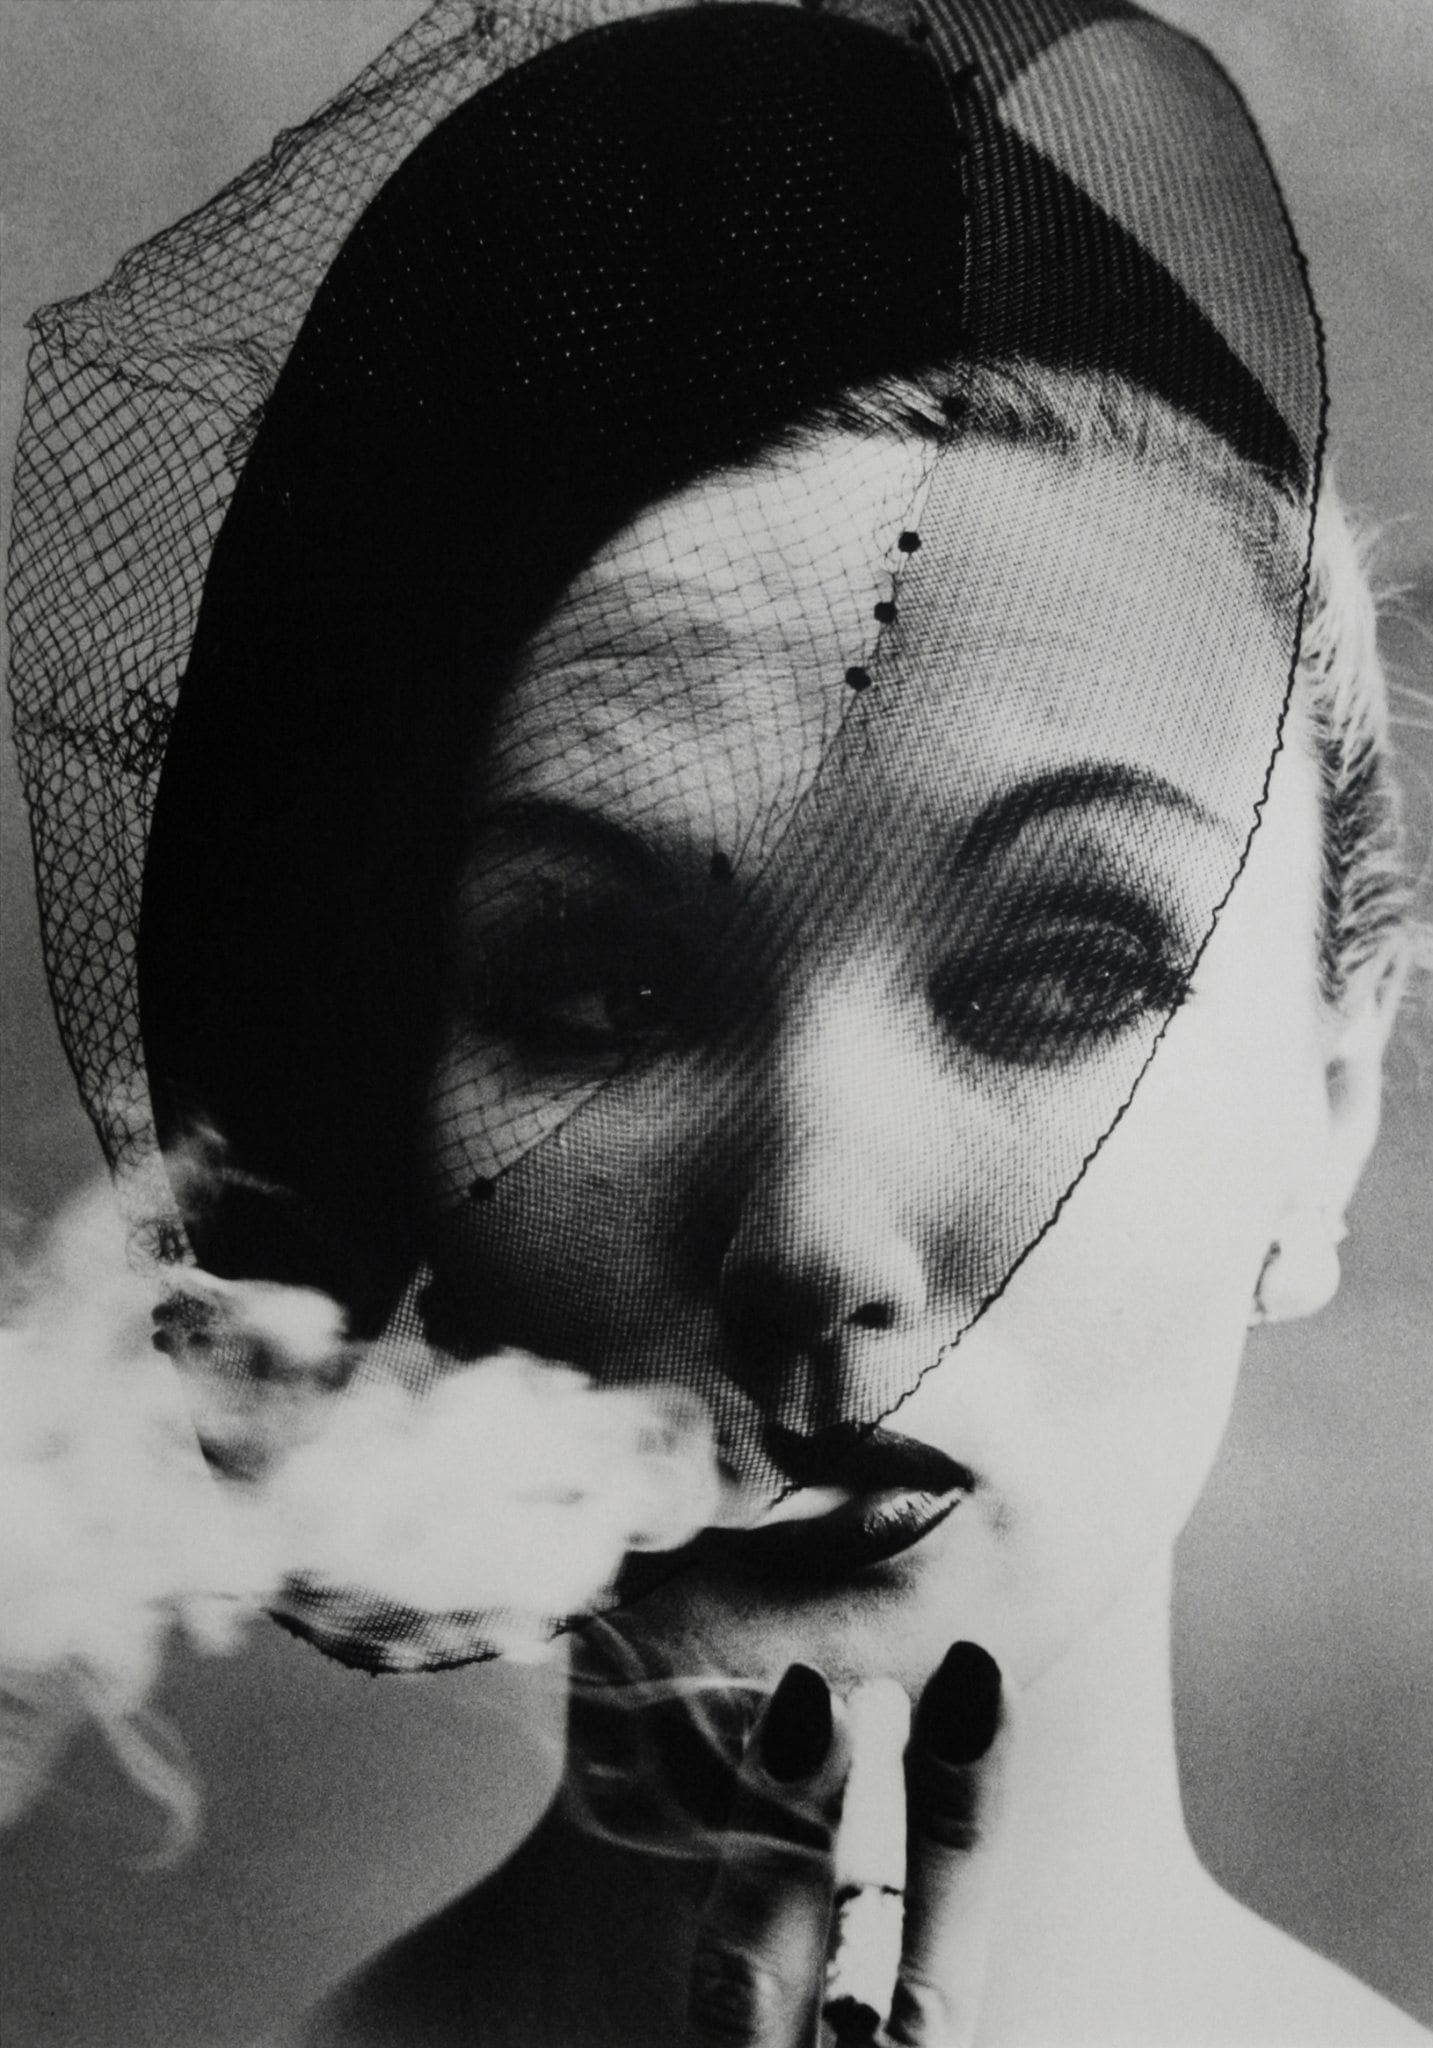 Smoke + Veil, Paris (Vogue), 1956